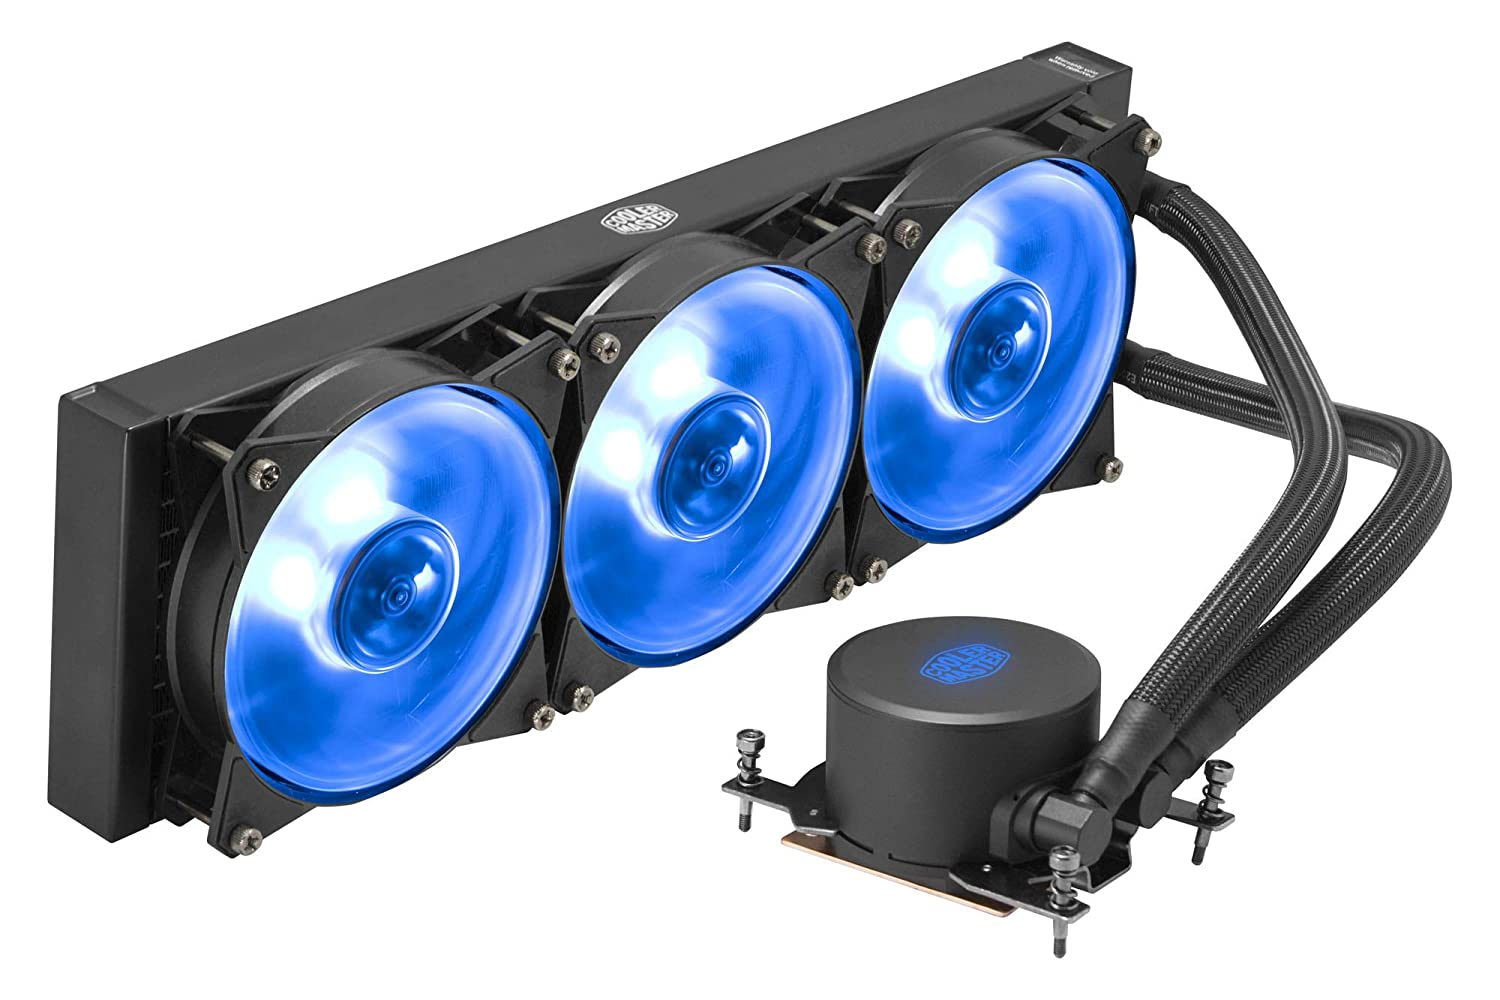 Cooler Master MasterLiquid ML360 RGB TR4 Edition Water Cooling Integrated CPU Cooler [AMD TR4 Compatible] FN1253 MLX-D36M-A20PC-T1